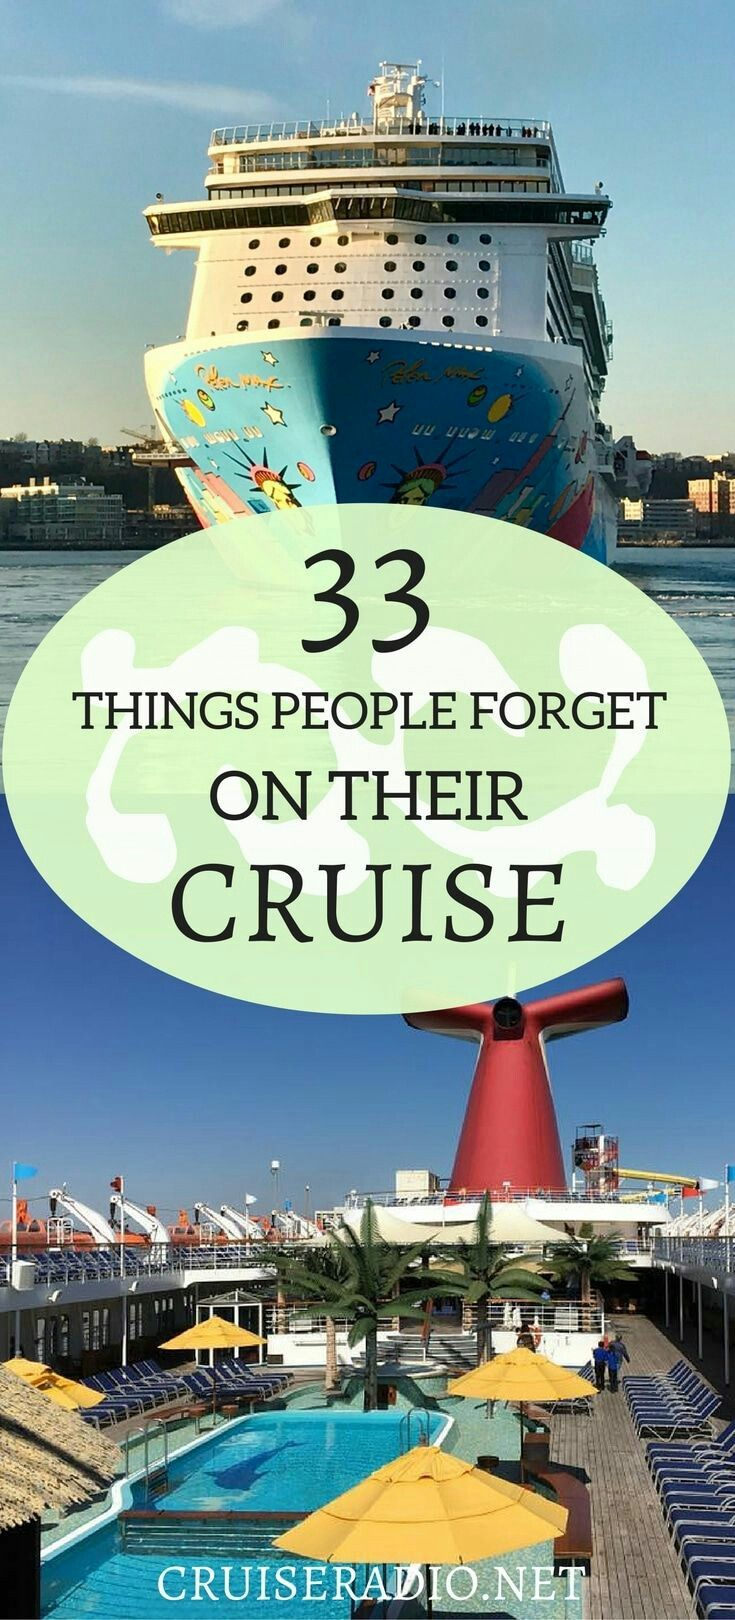 We have compiled a list of things people often forget to bring for their cruise vacation, in hopes that this will help you remember!!